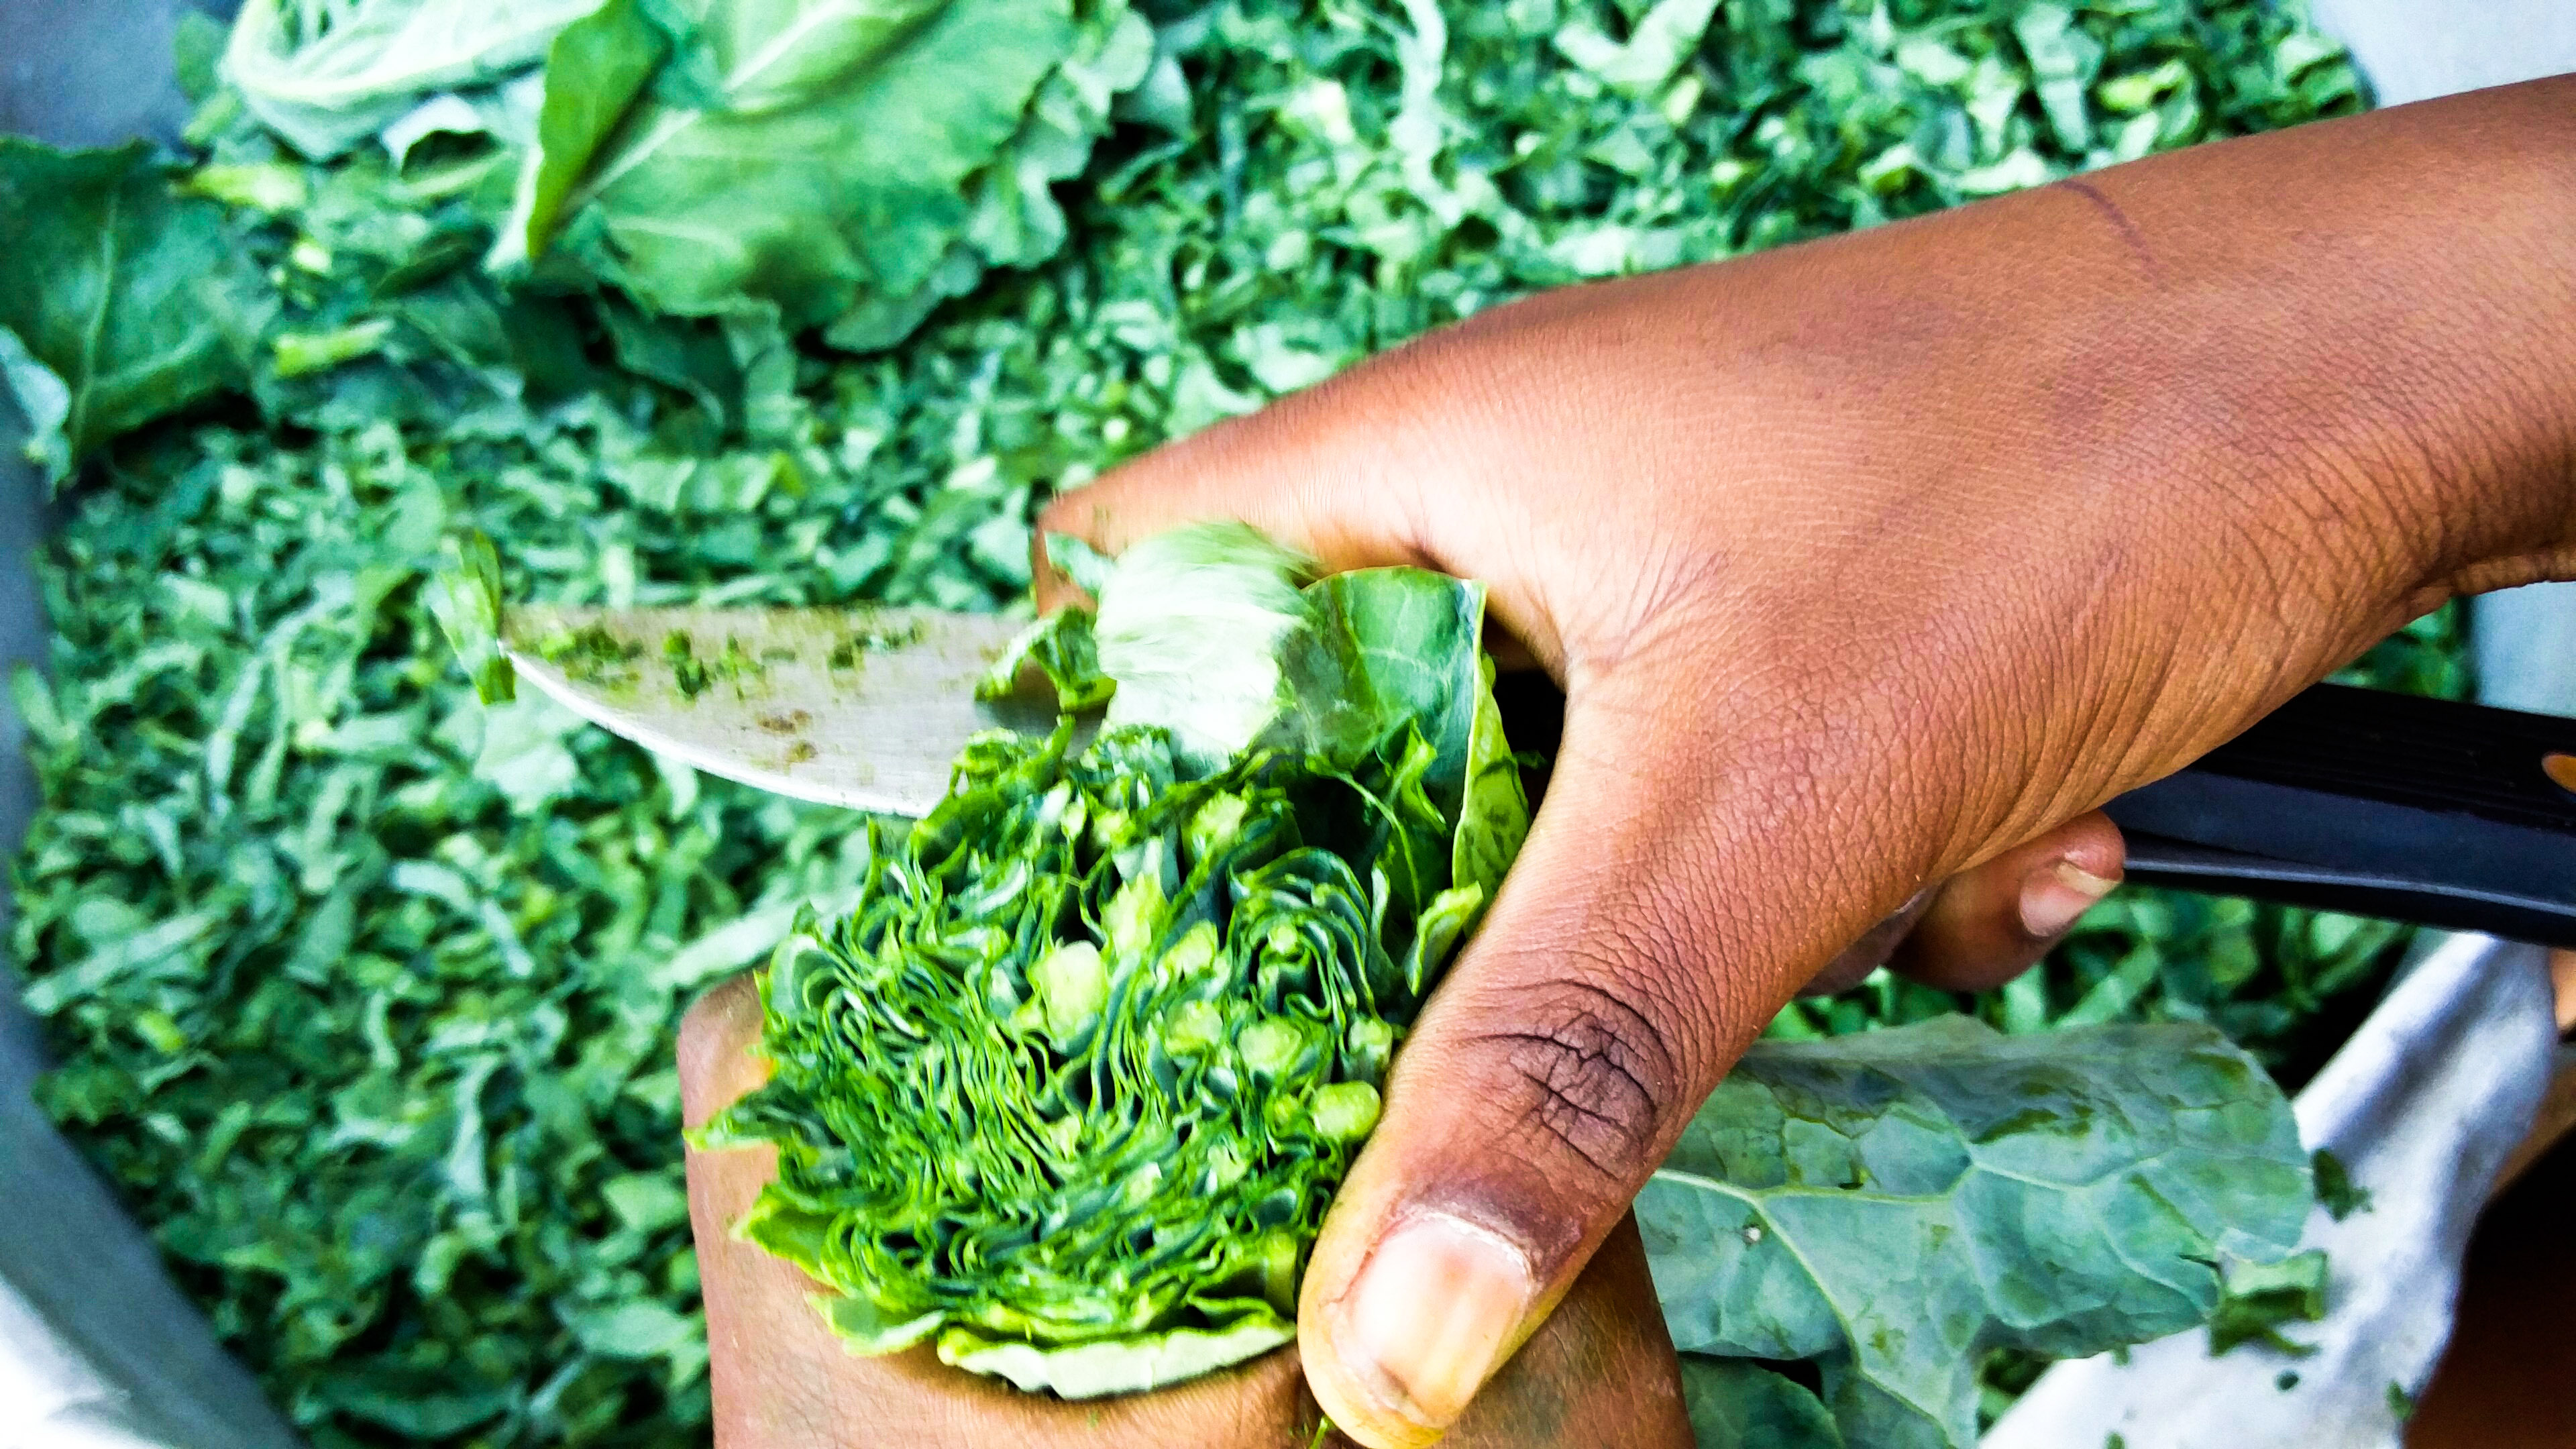 Preparing kale for the cooking pot